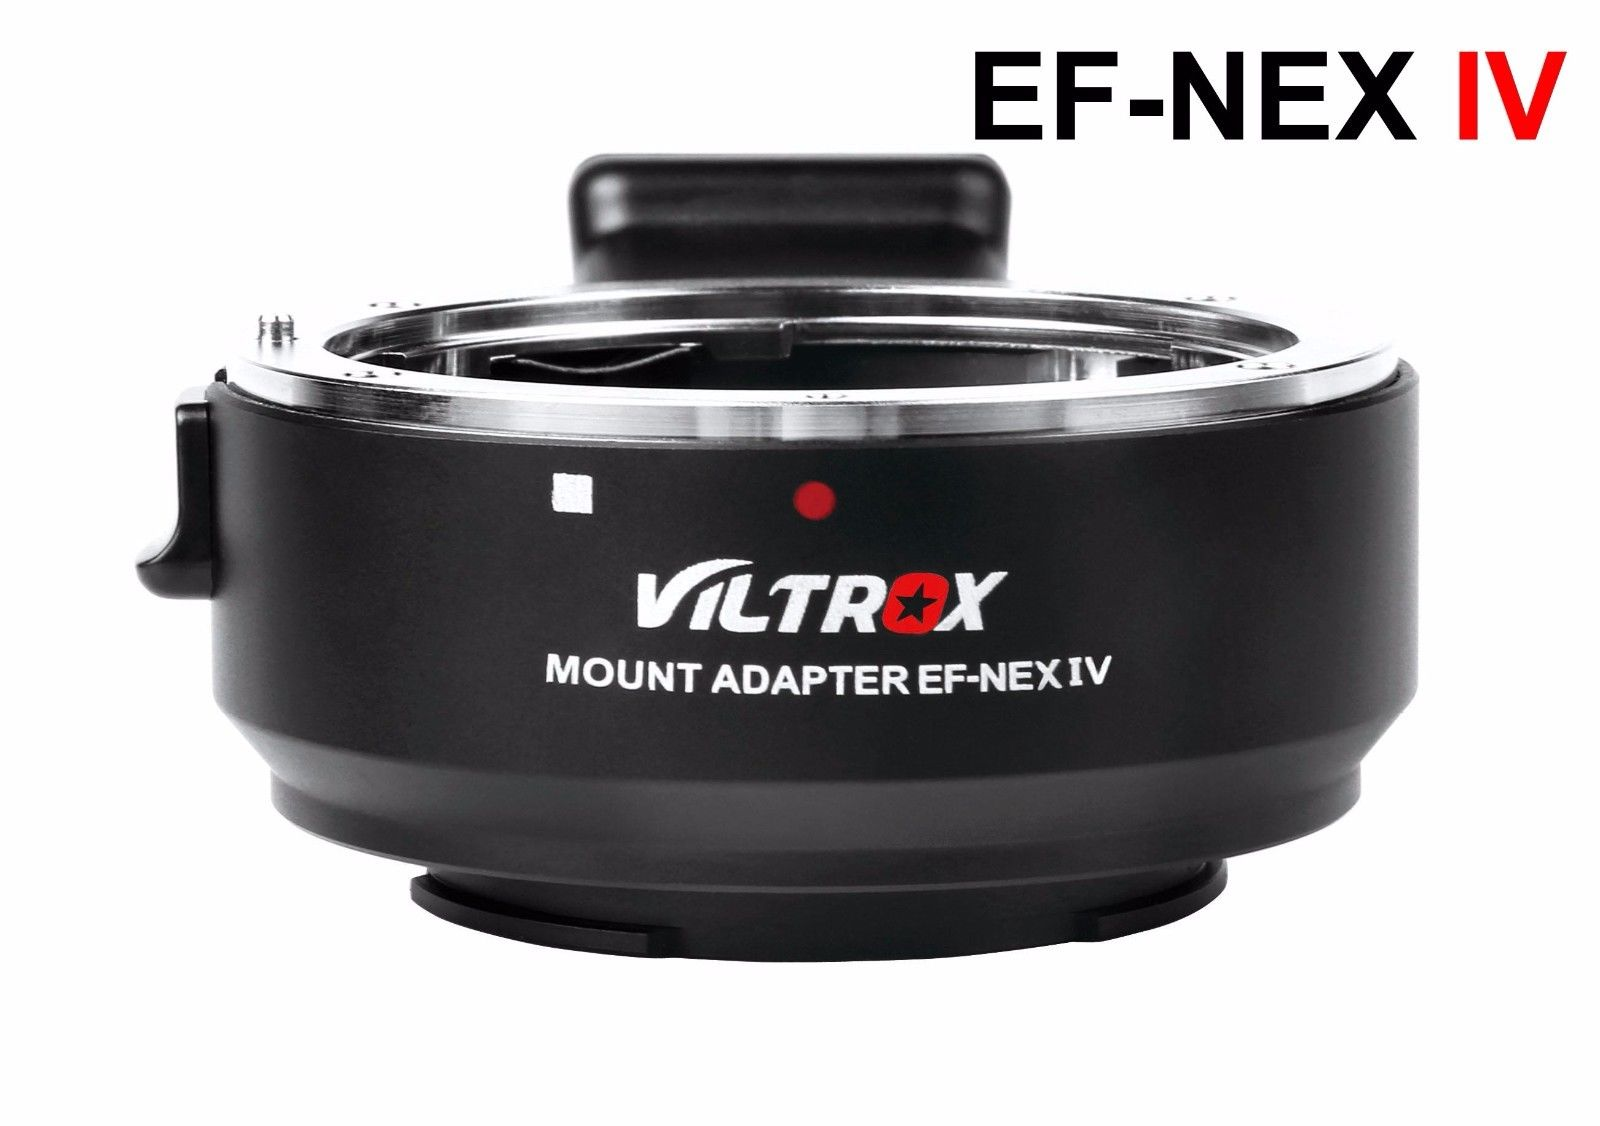 Viltrox EF-NEX IV Auto Focus Lens Adapter for Canon EOS EF EF-S Lens to Sony E NEX Full Frame A9 A7 A7II A7RII A7SII A6500 A6300 musiclily 6 string electric guitar bridge assembly saddles for fender tele telecaster tl electric guitar parts